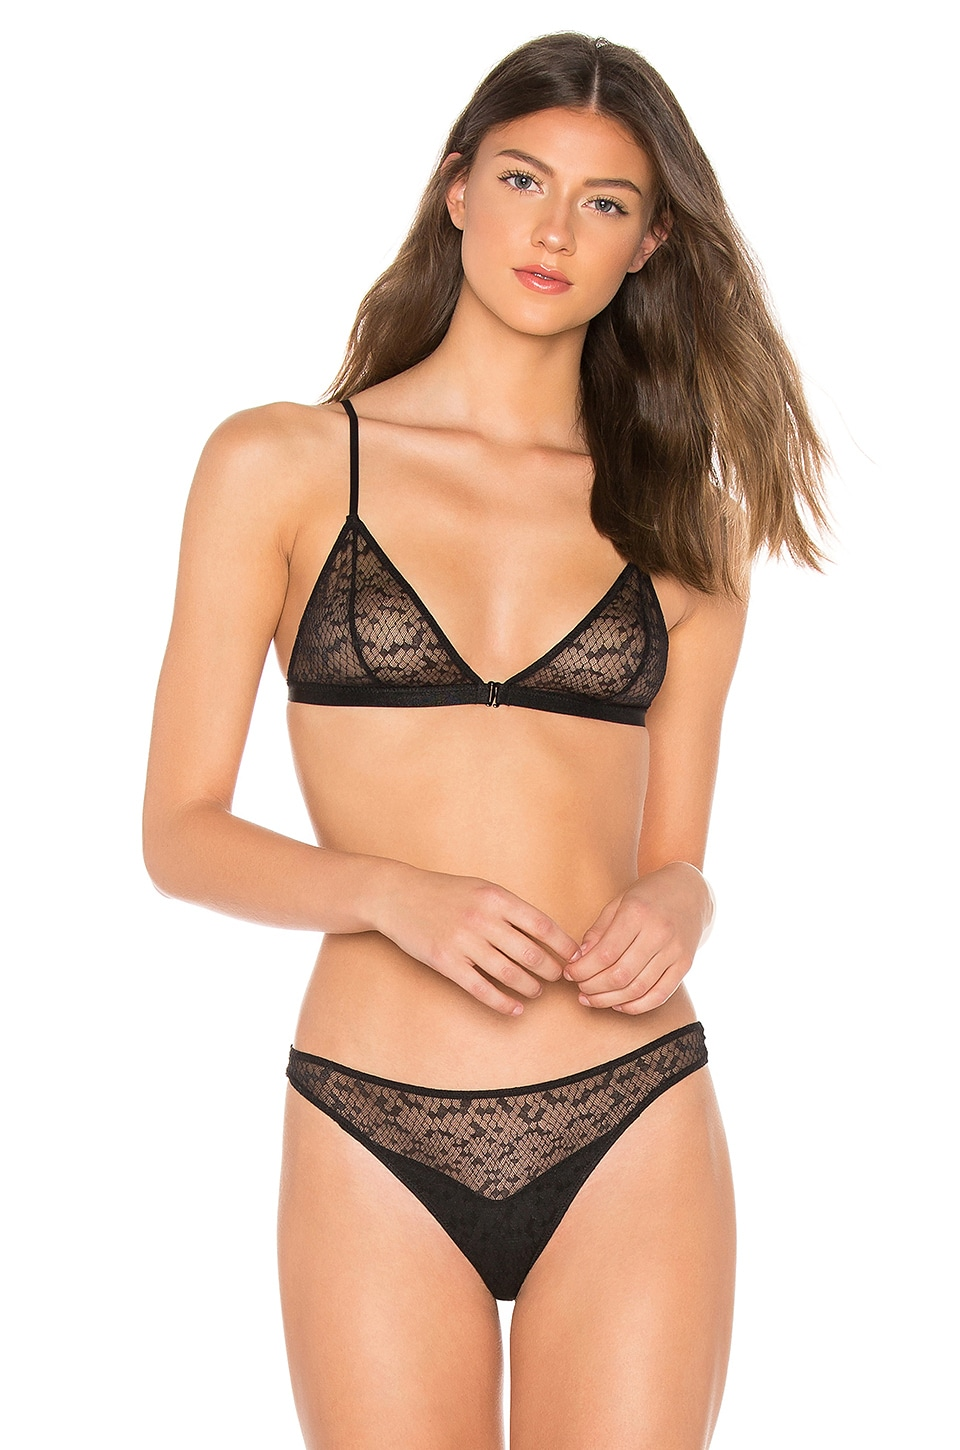 Les Girls Les Boys SNAKE LACE TRIANGLE BRA